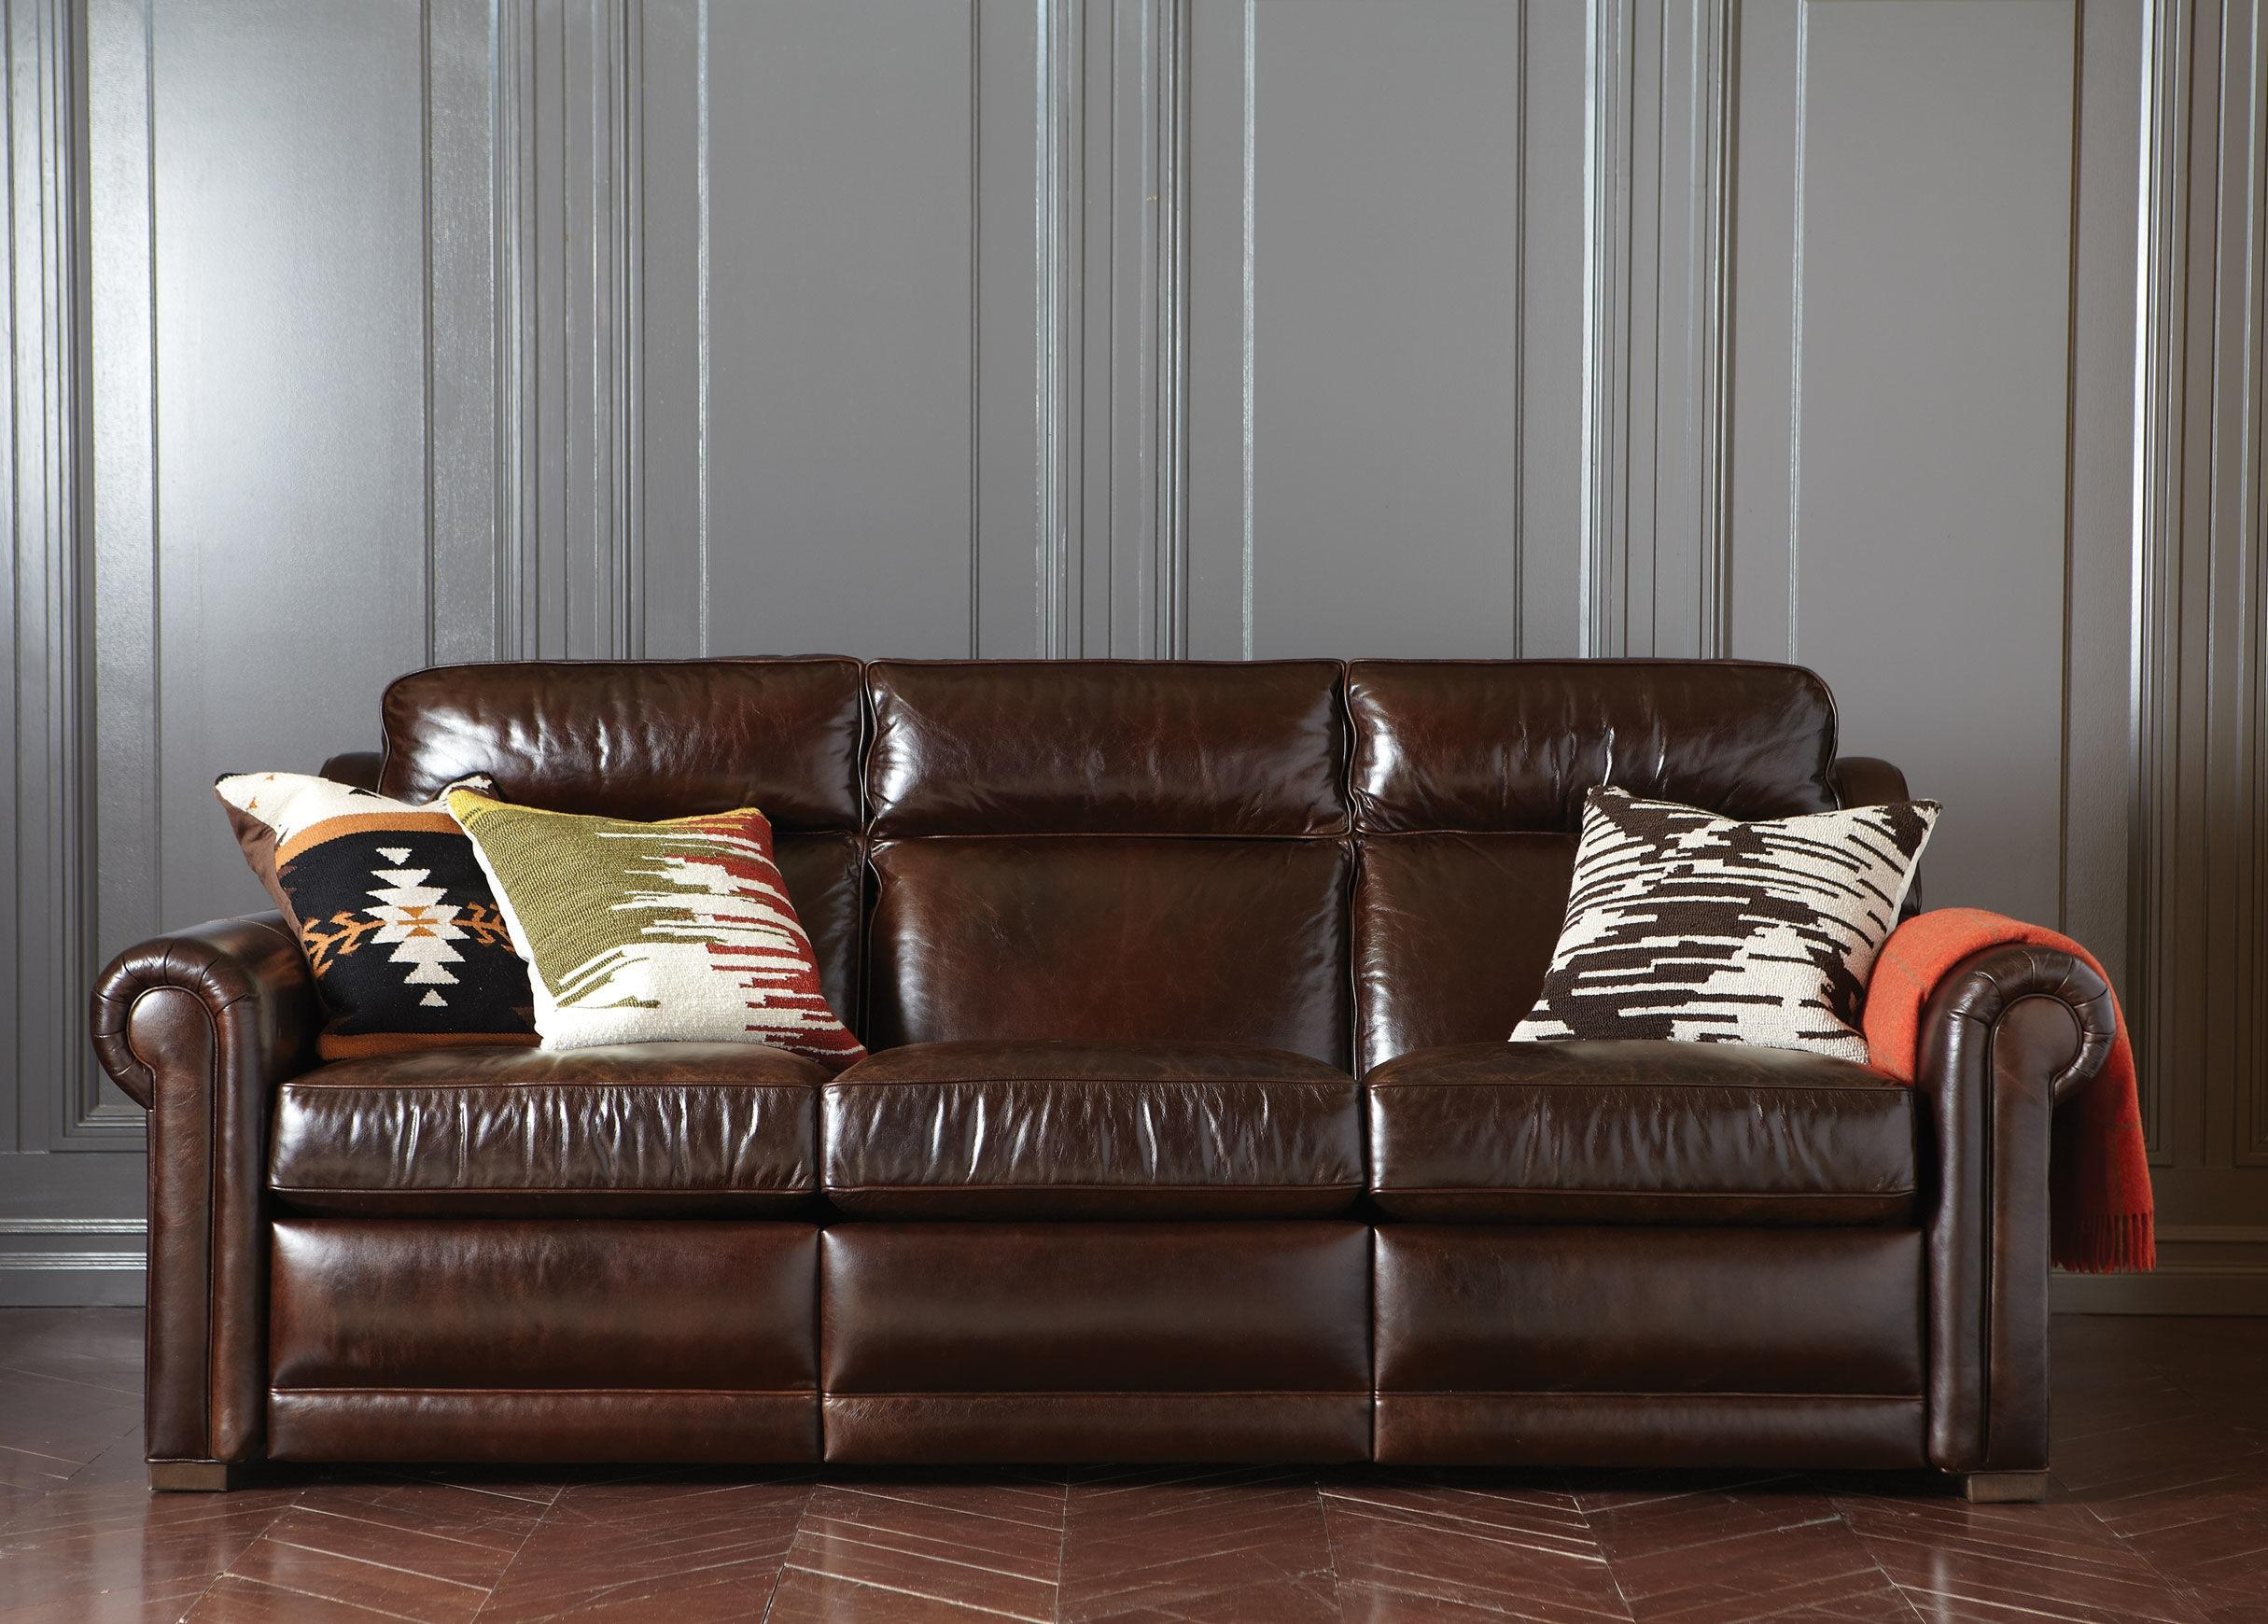 Ethan Allen Leather Sofa 51 With Ethan Allen Leather Sofa Pertaining To 68 Inch Sofas (View 17 of 20)